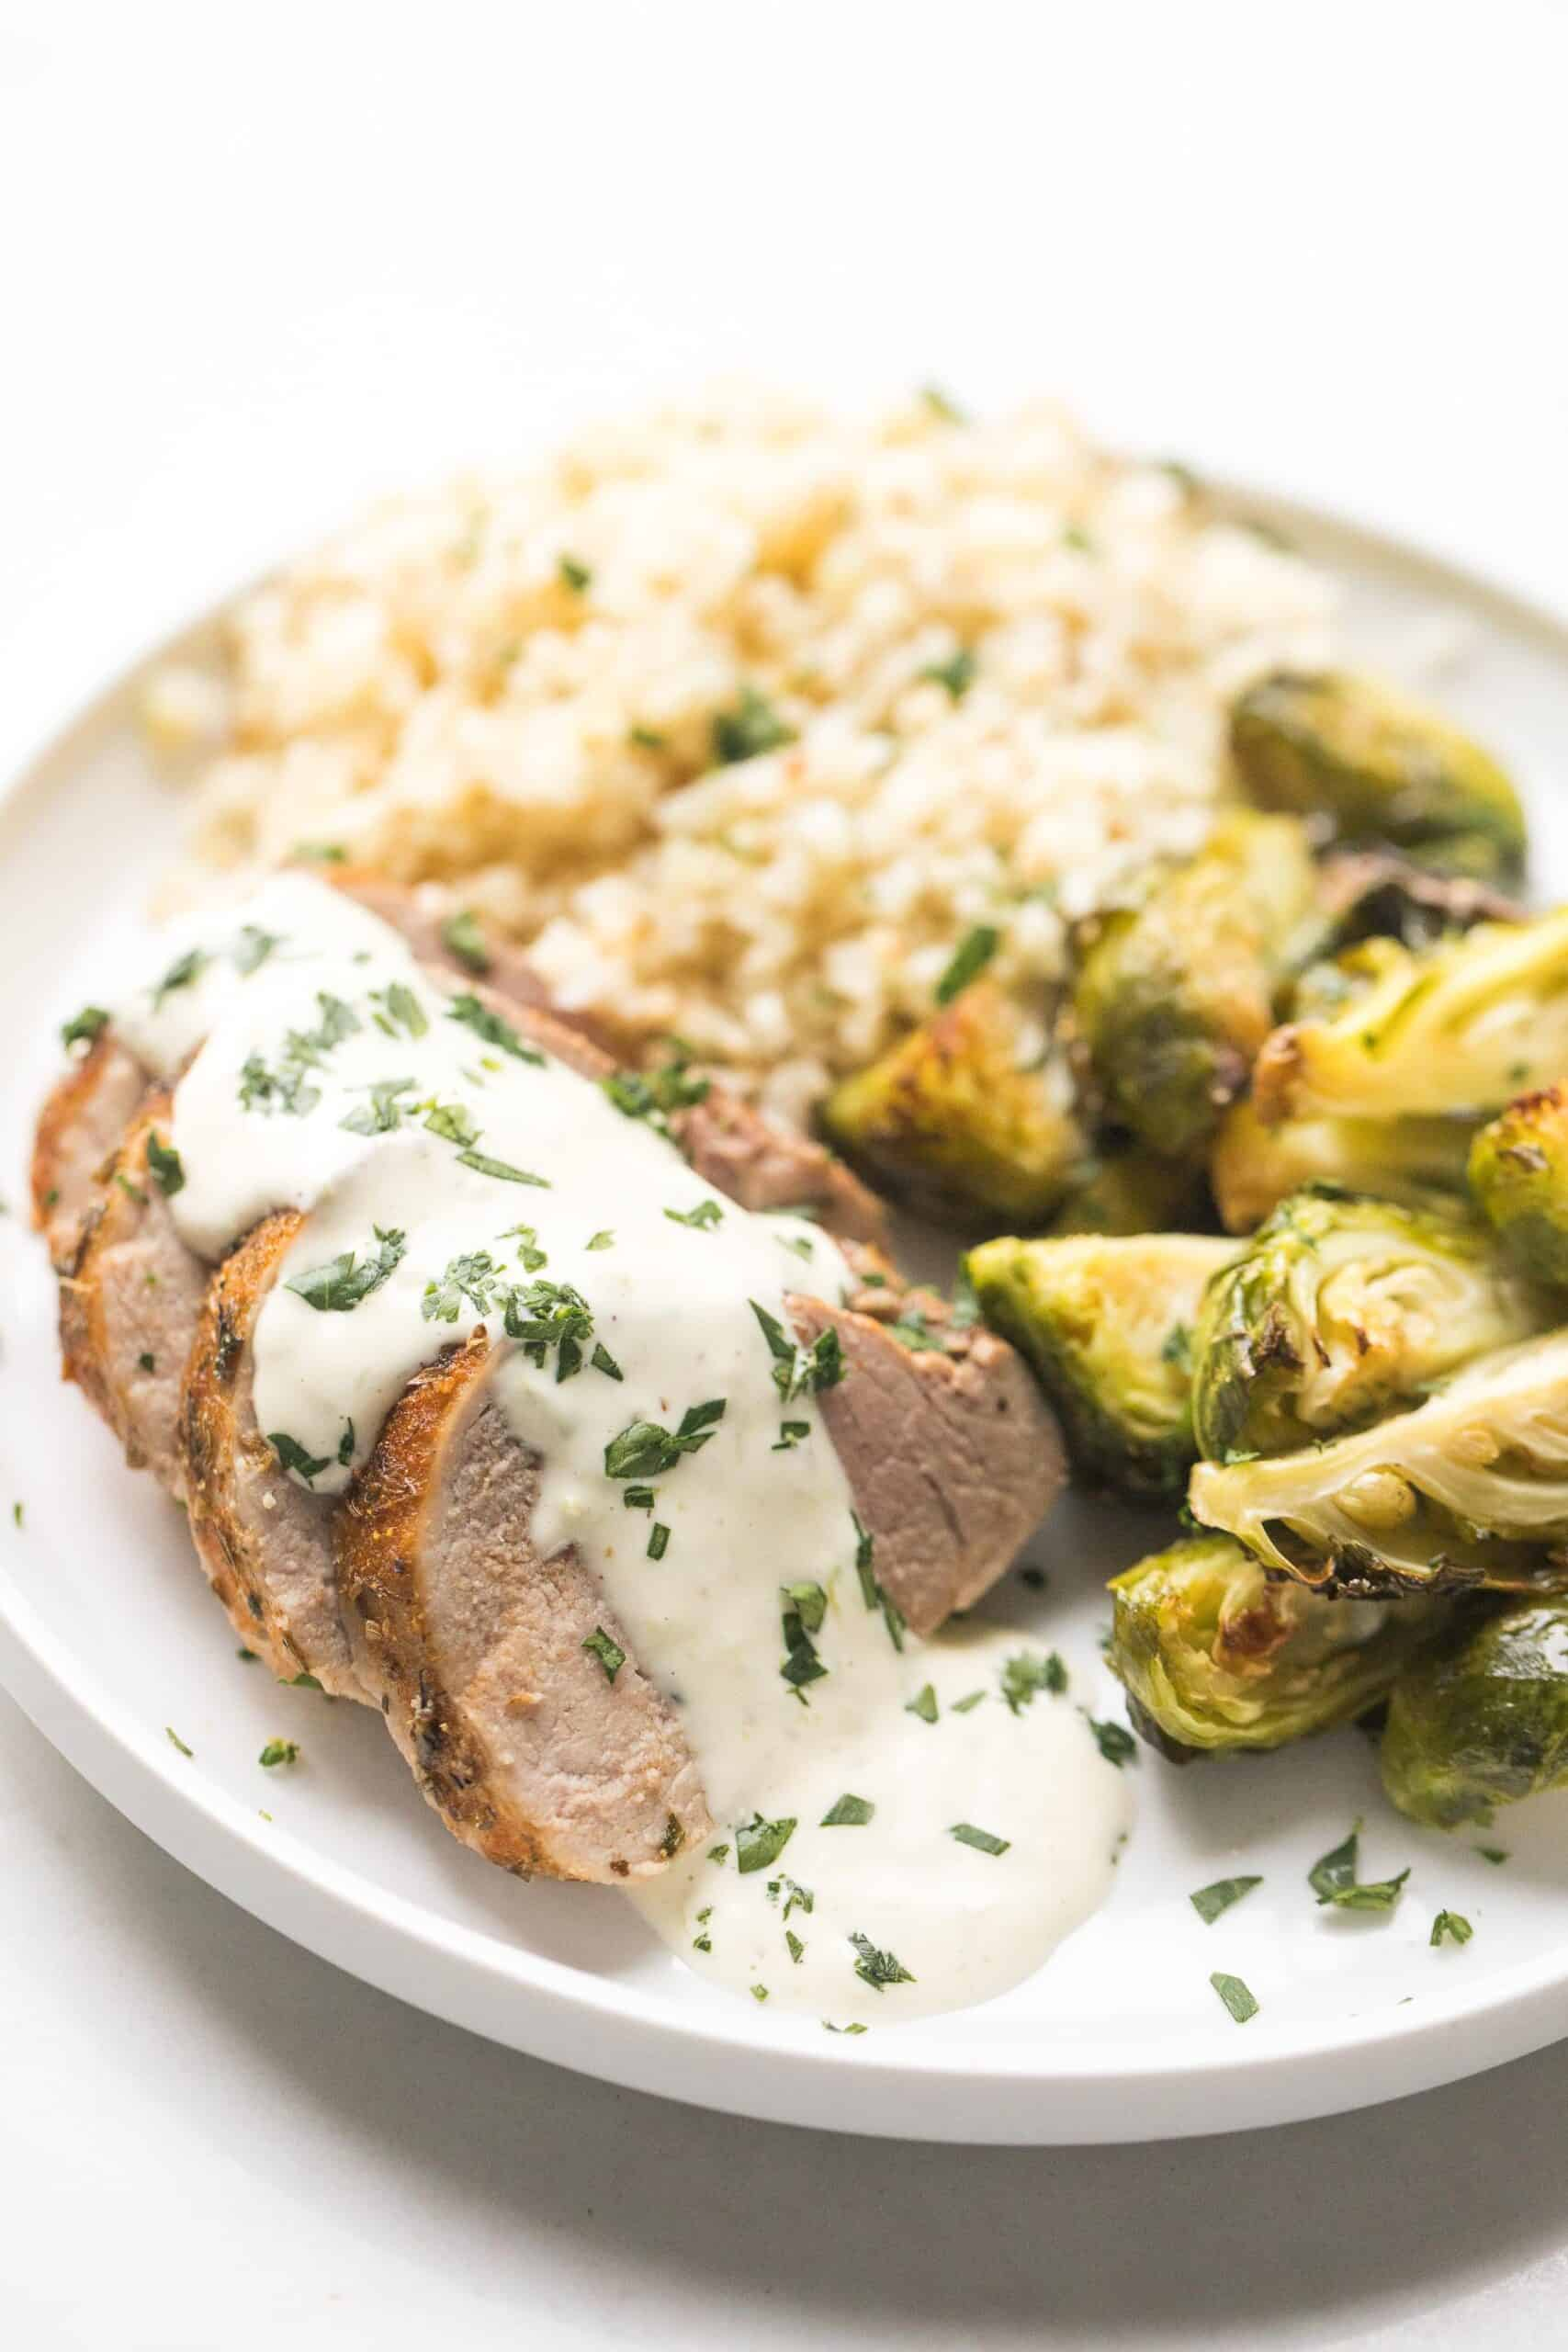 blackened pork tenderloin topped with white sauce lime garlic aioli with with brussels sprouts and cauliflower rice